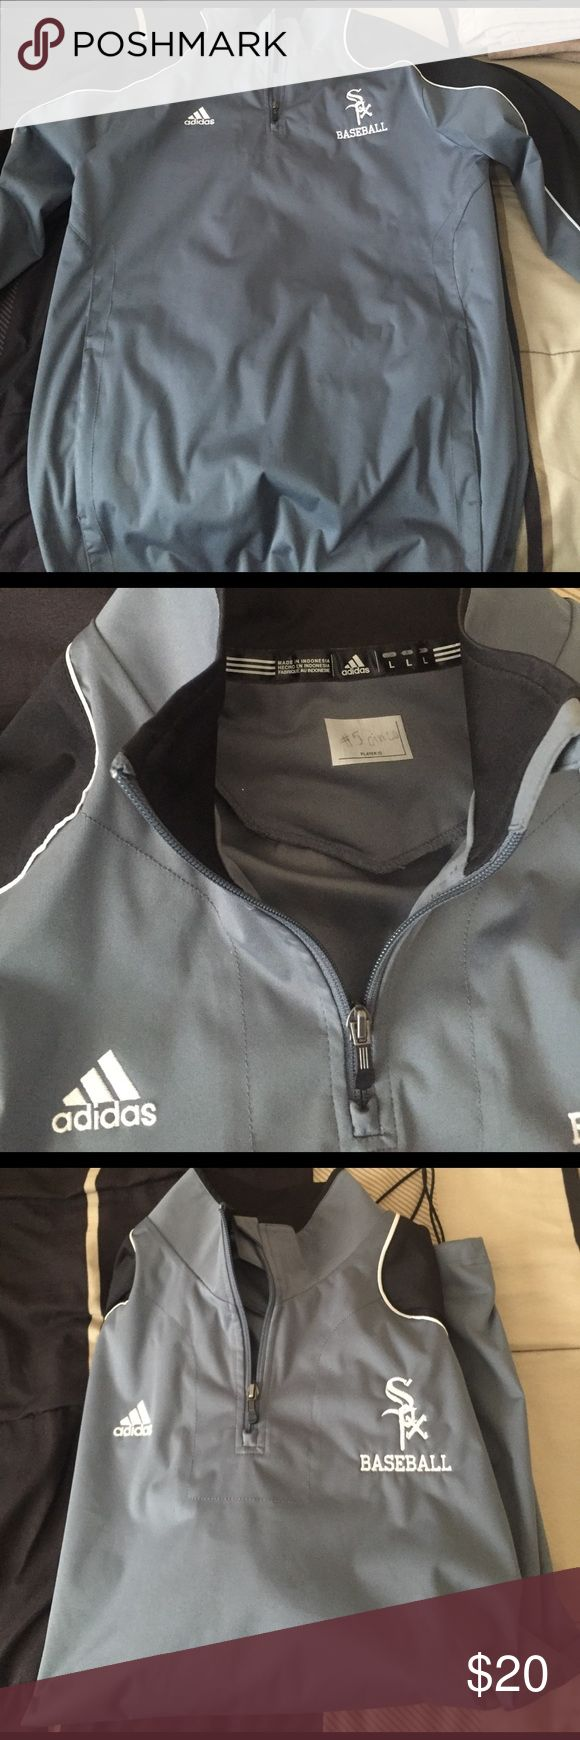 Adidas Baseball Pullover Size L -Perfect condition trying to get rid of un-worn clothes! Jackets & Coats Bomber & Varsity